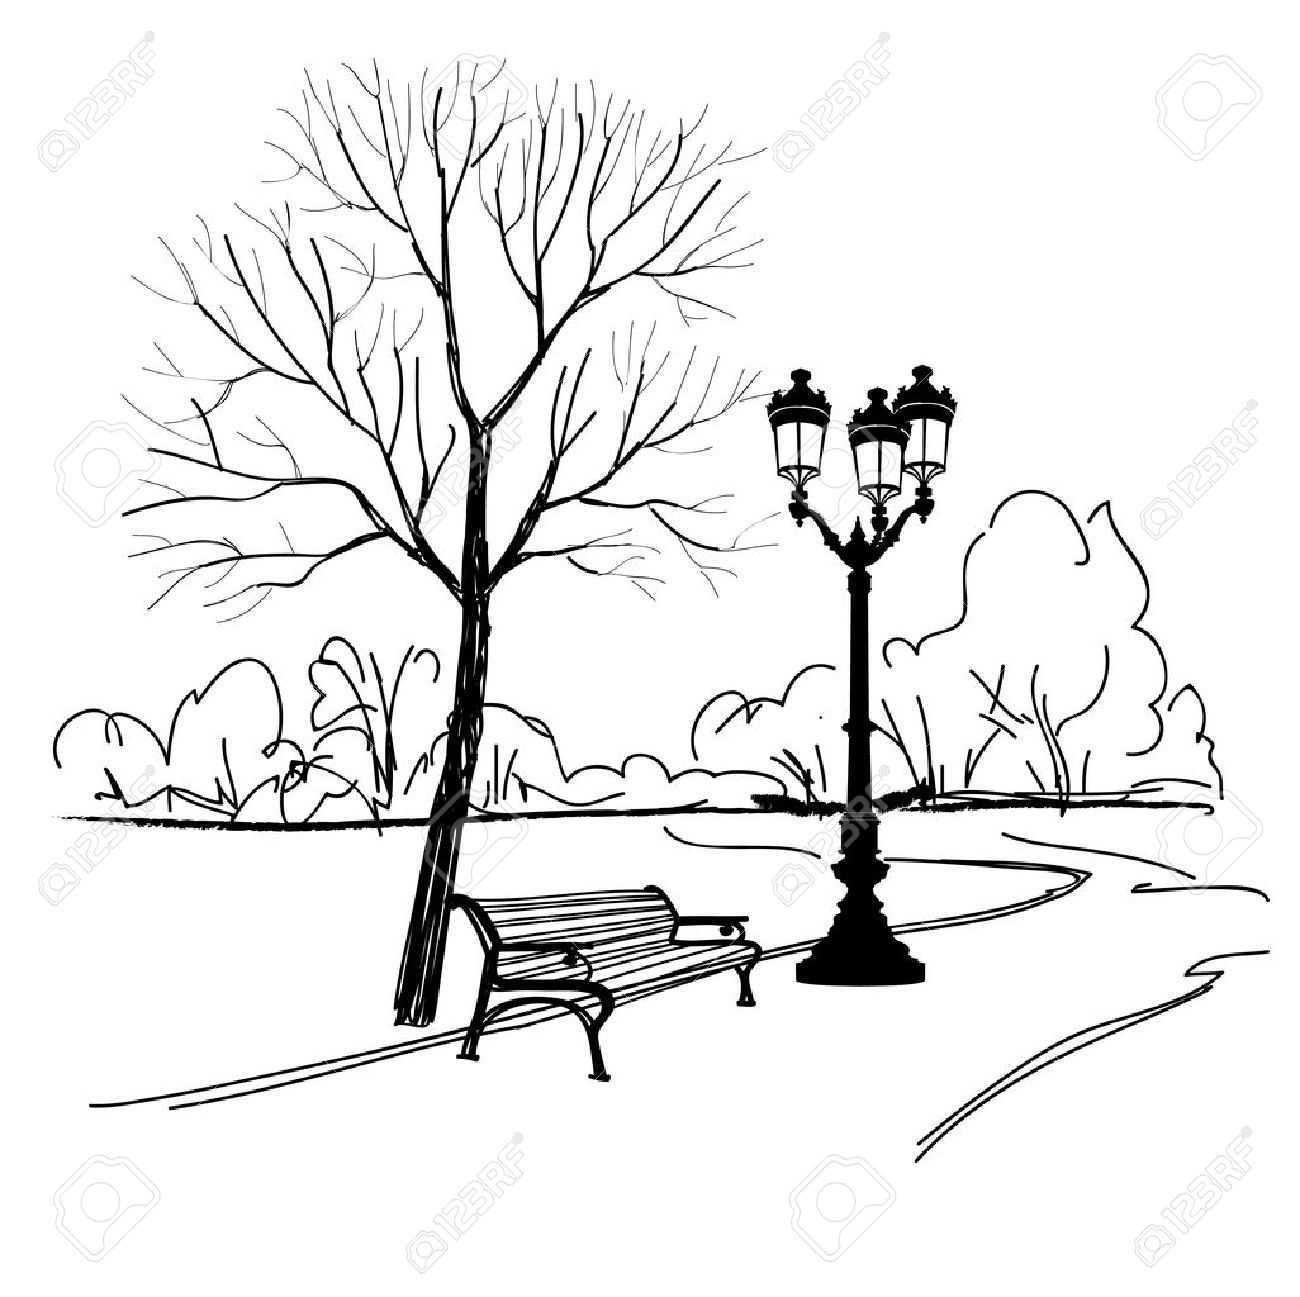 Bench in park with tree and streetlamp. - 31201740